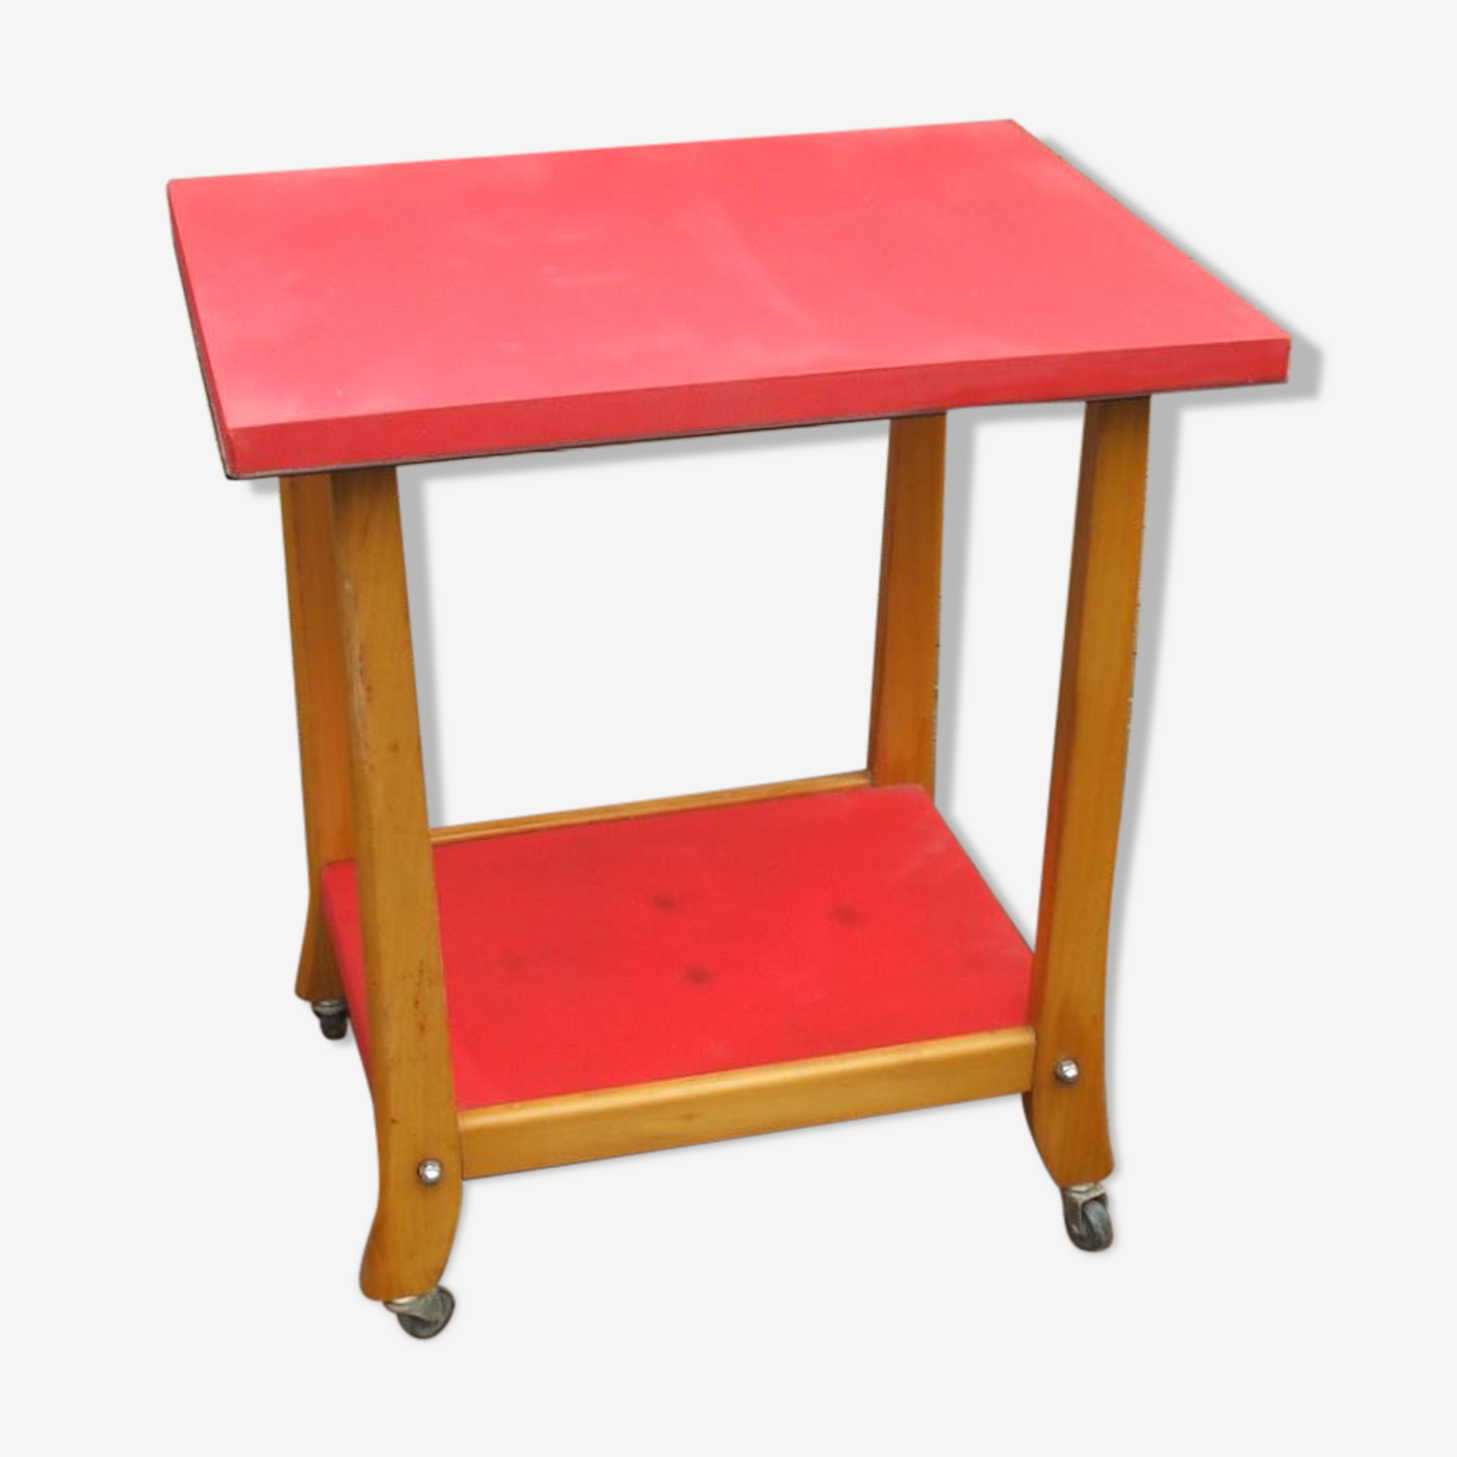 kitchen trolley years 50 / 60 Red